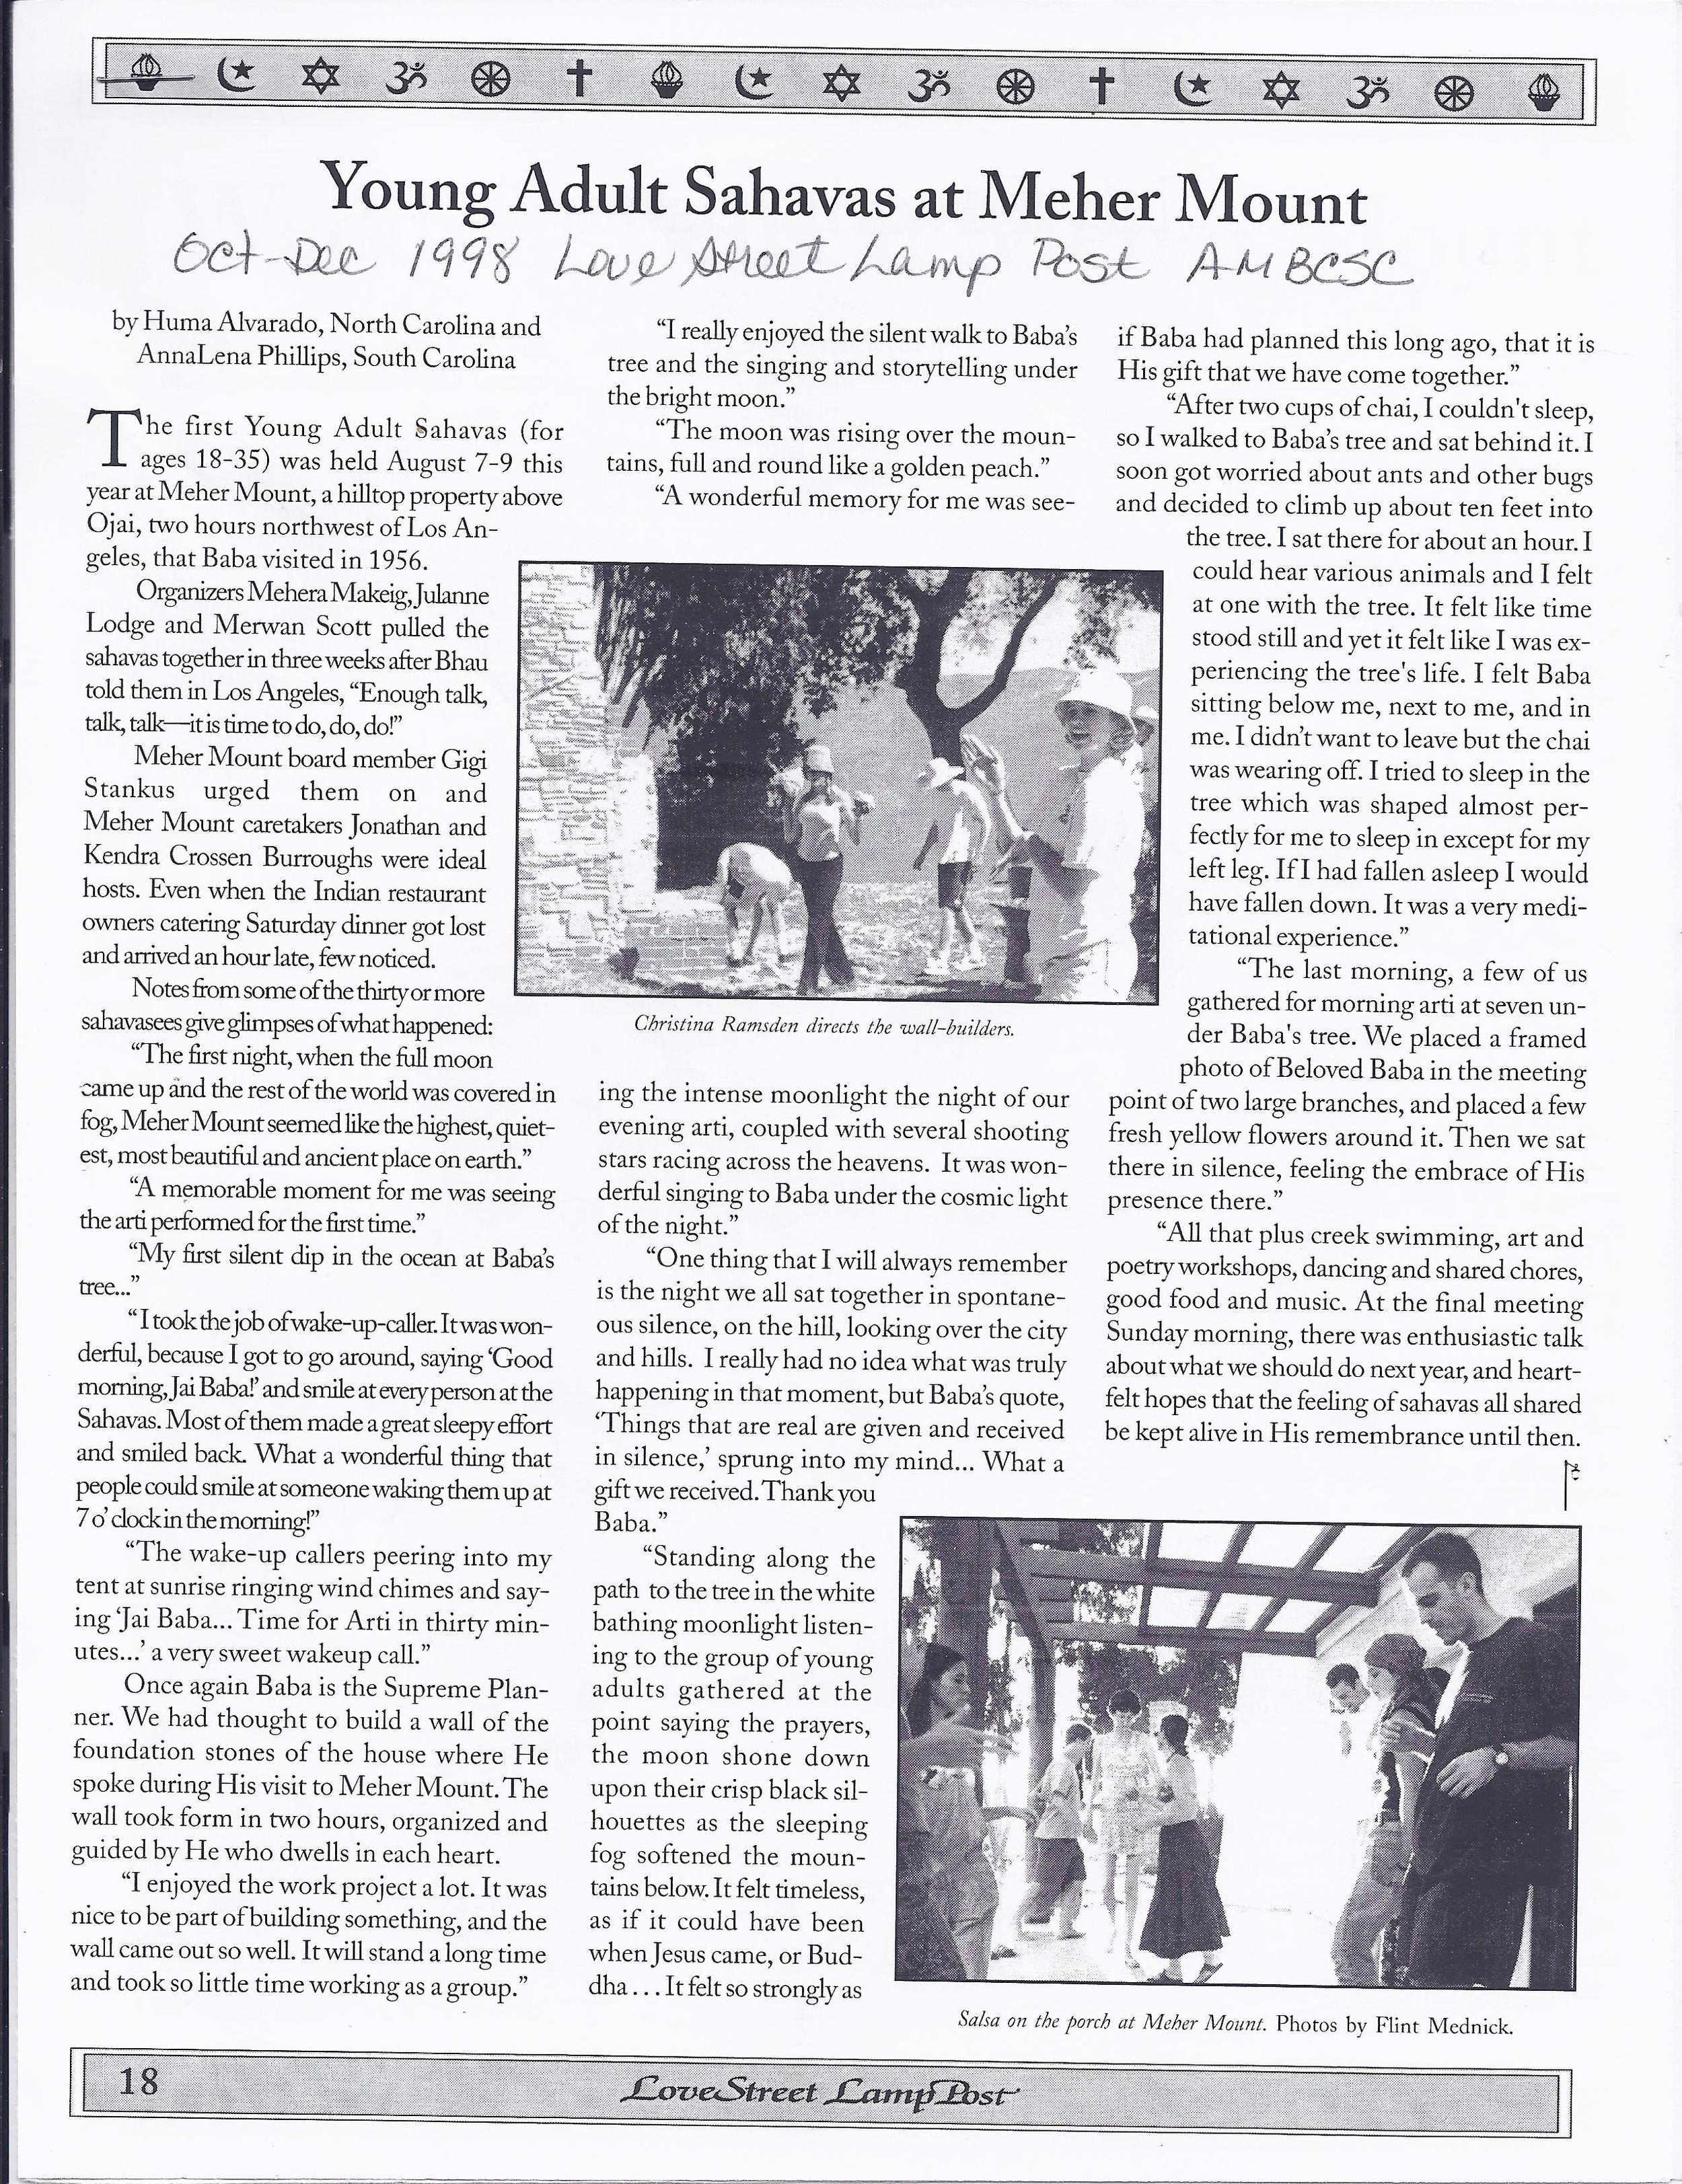 THE YOUNG ADULT SAHAVAS was August 7-9, 1998. Photos in the original article were taken by Flint Mednick and show some of the activities of the gathering.